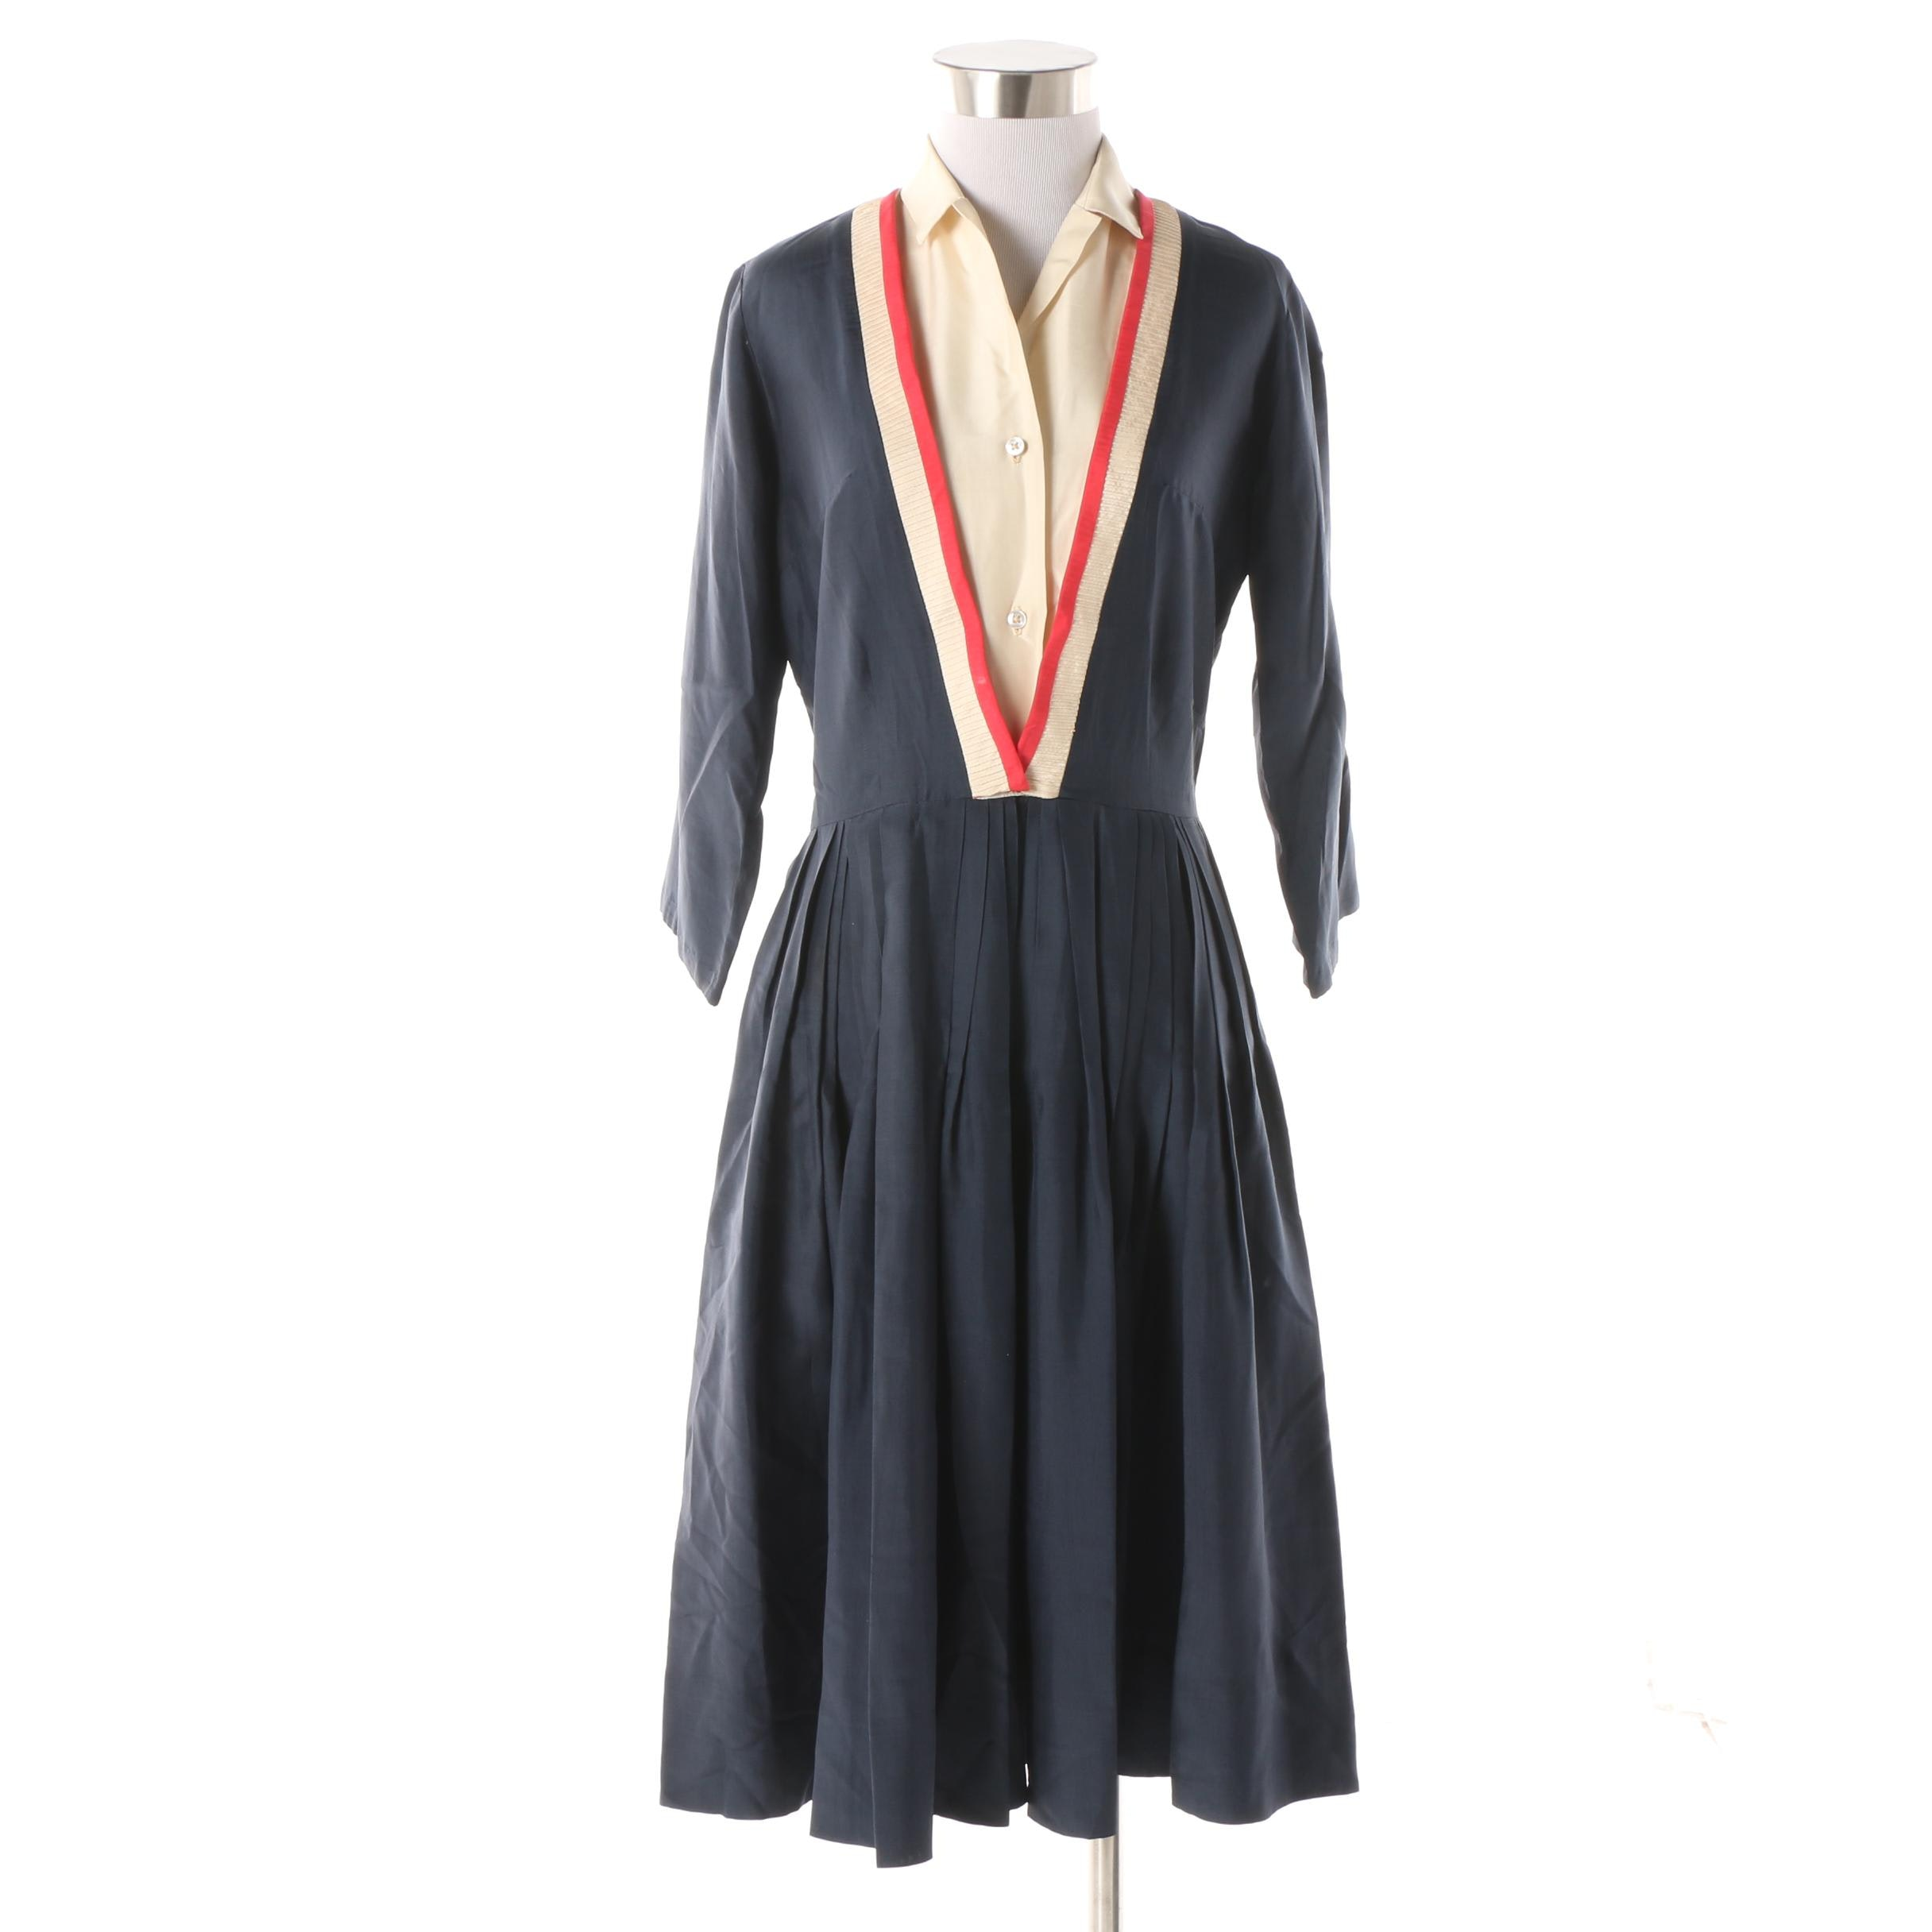 Women's 1950s Vintage Pleated Shirtwaist Dress